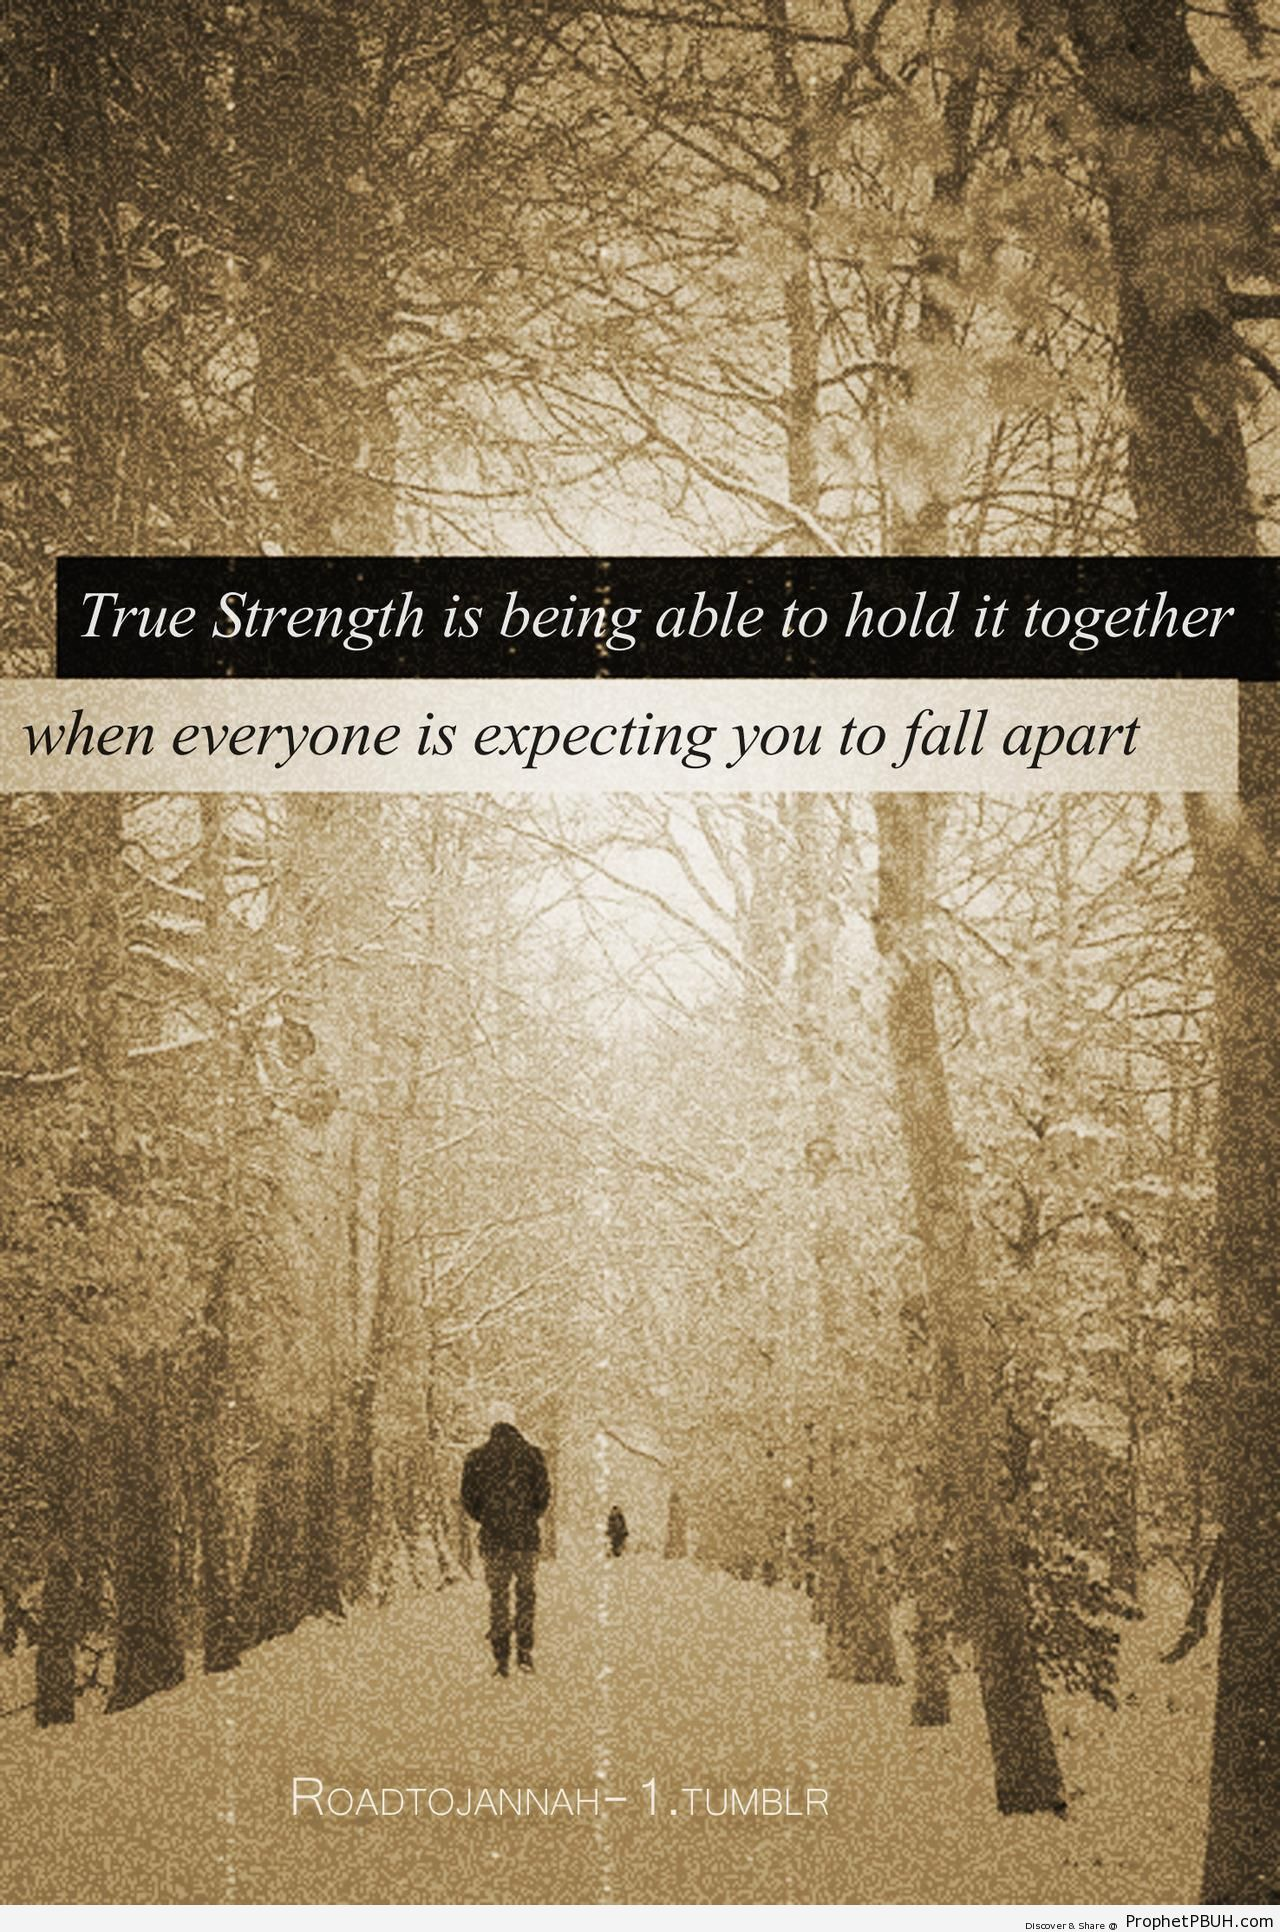 True Strength - Islamic Quotes About Strength